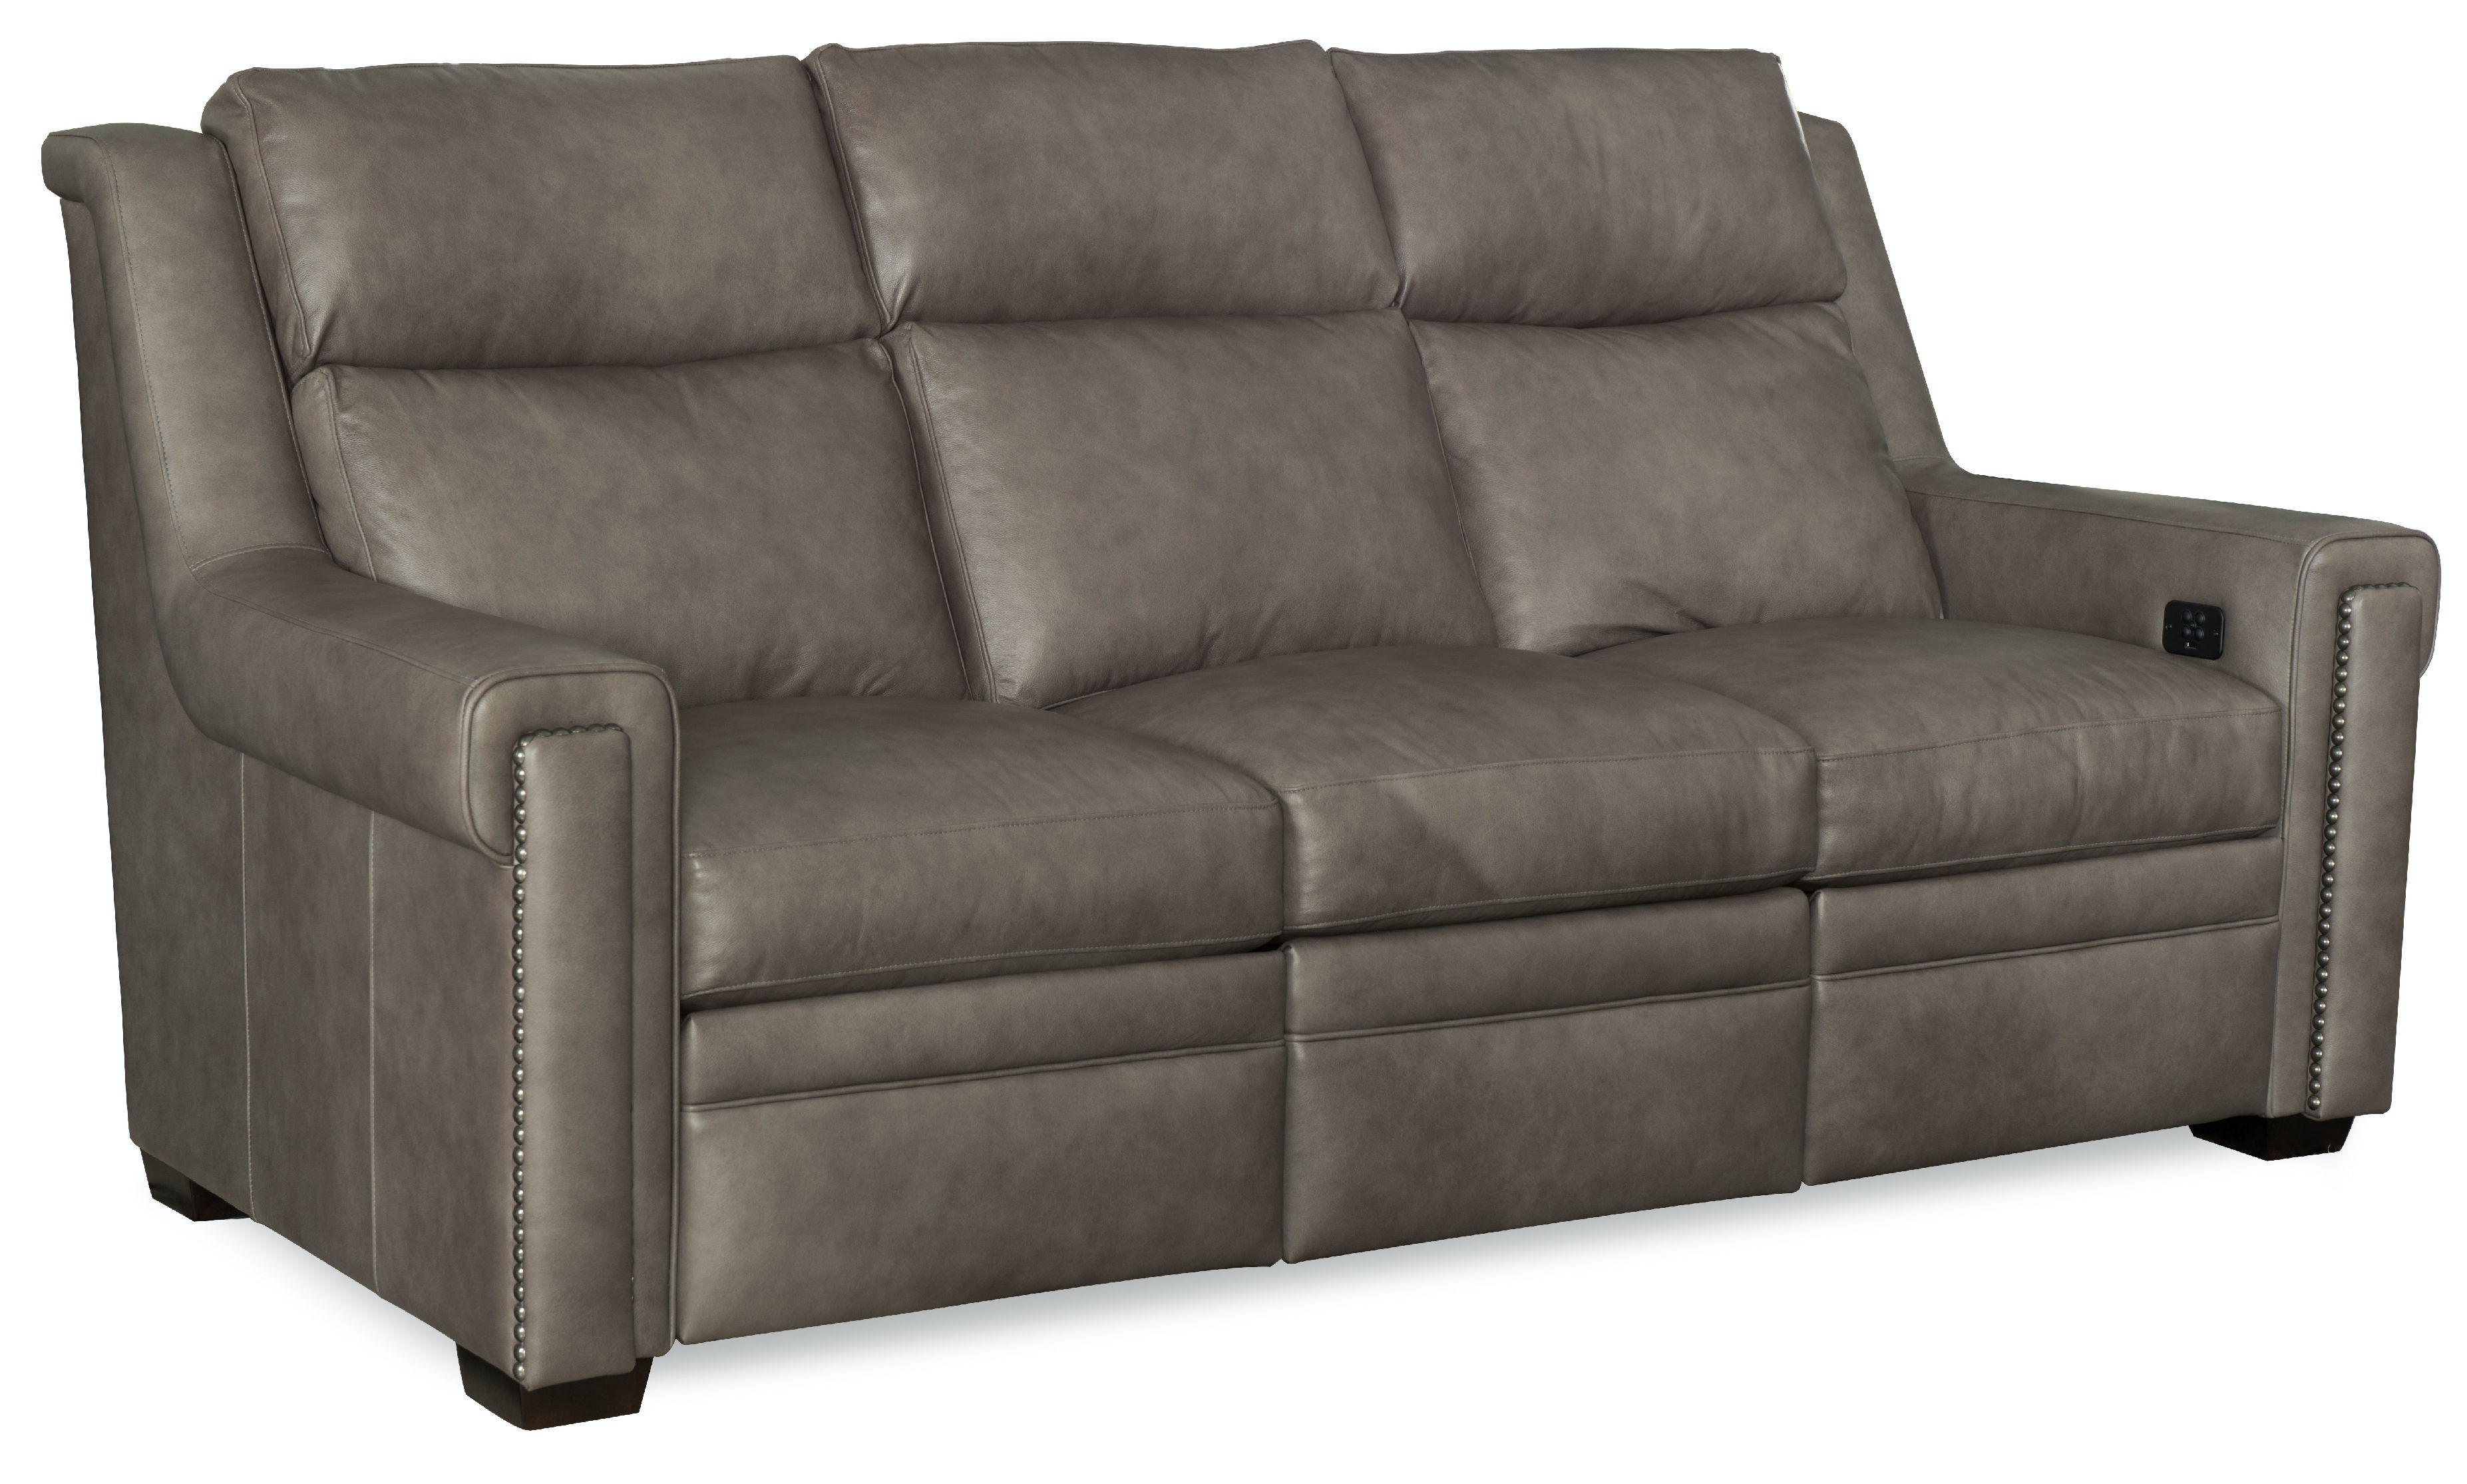 Bradington Young Imagine Sofa L U0026 R Recline   W/ Articulating HR 960 90